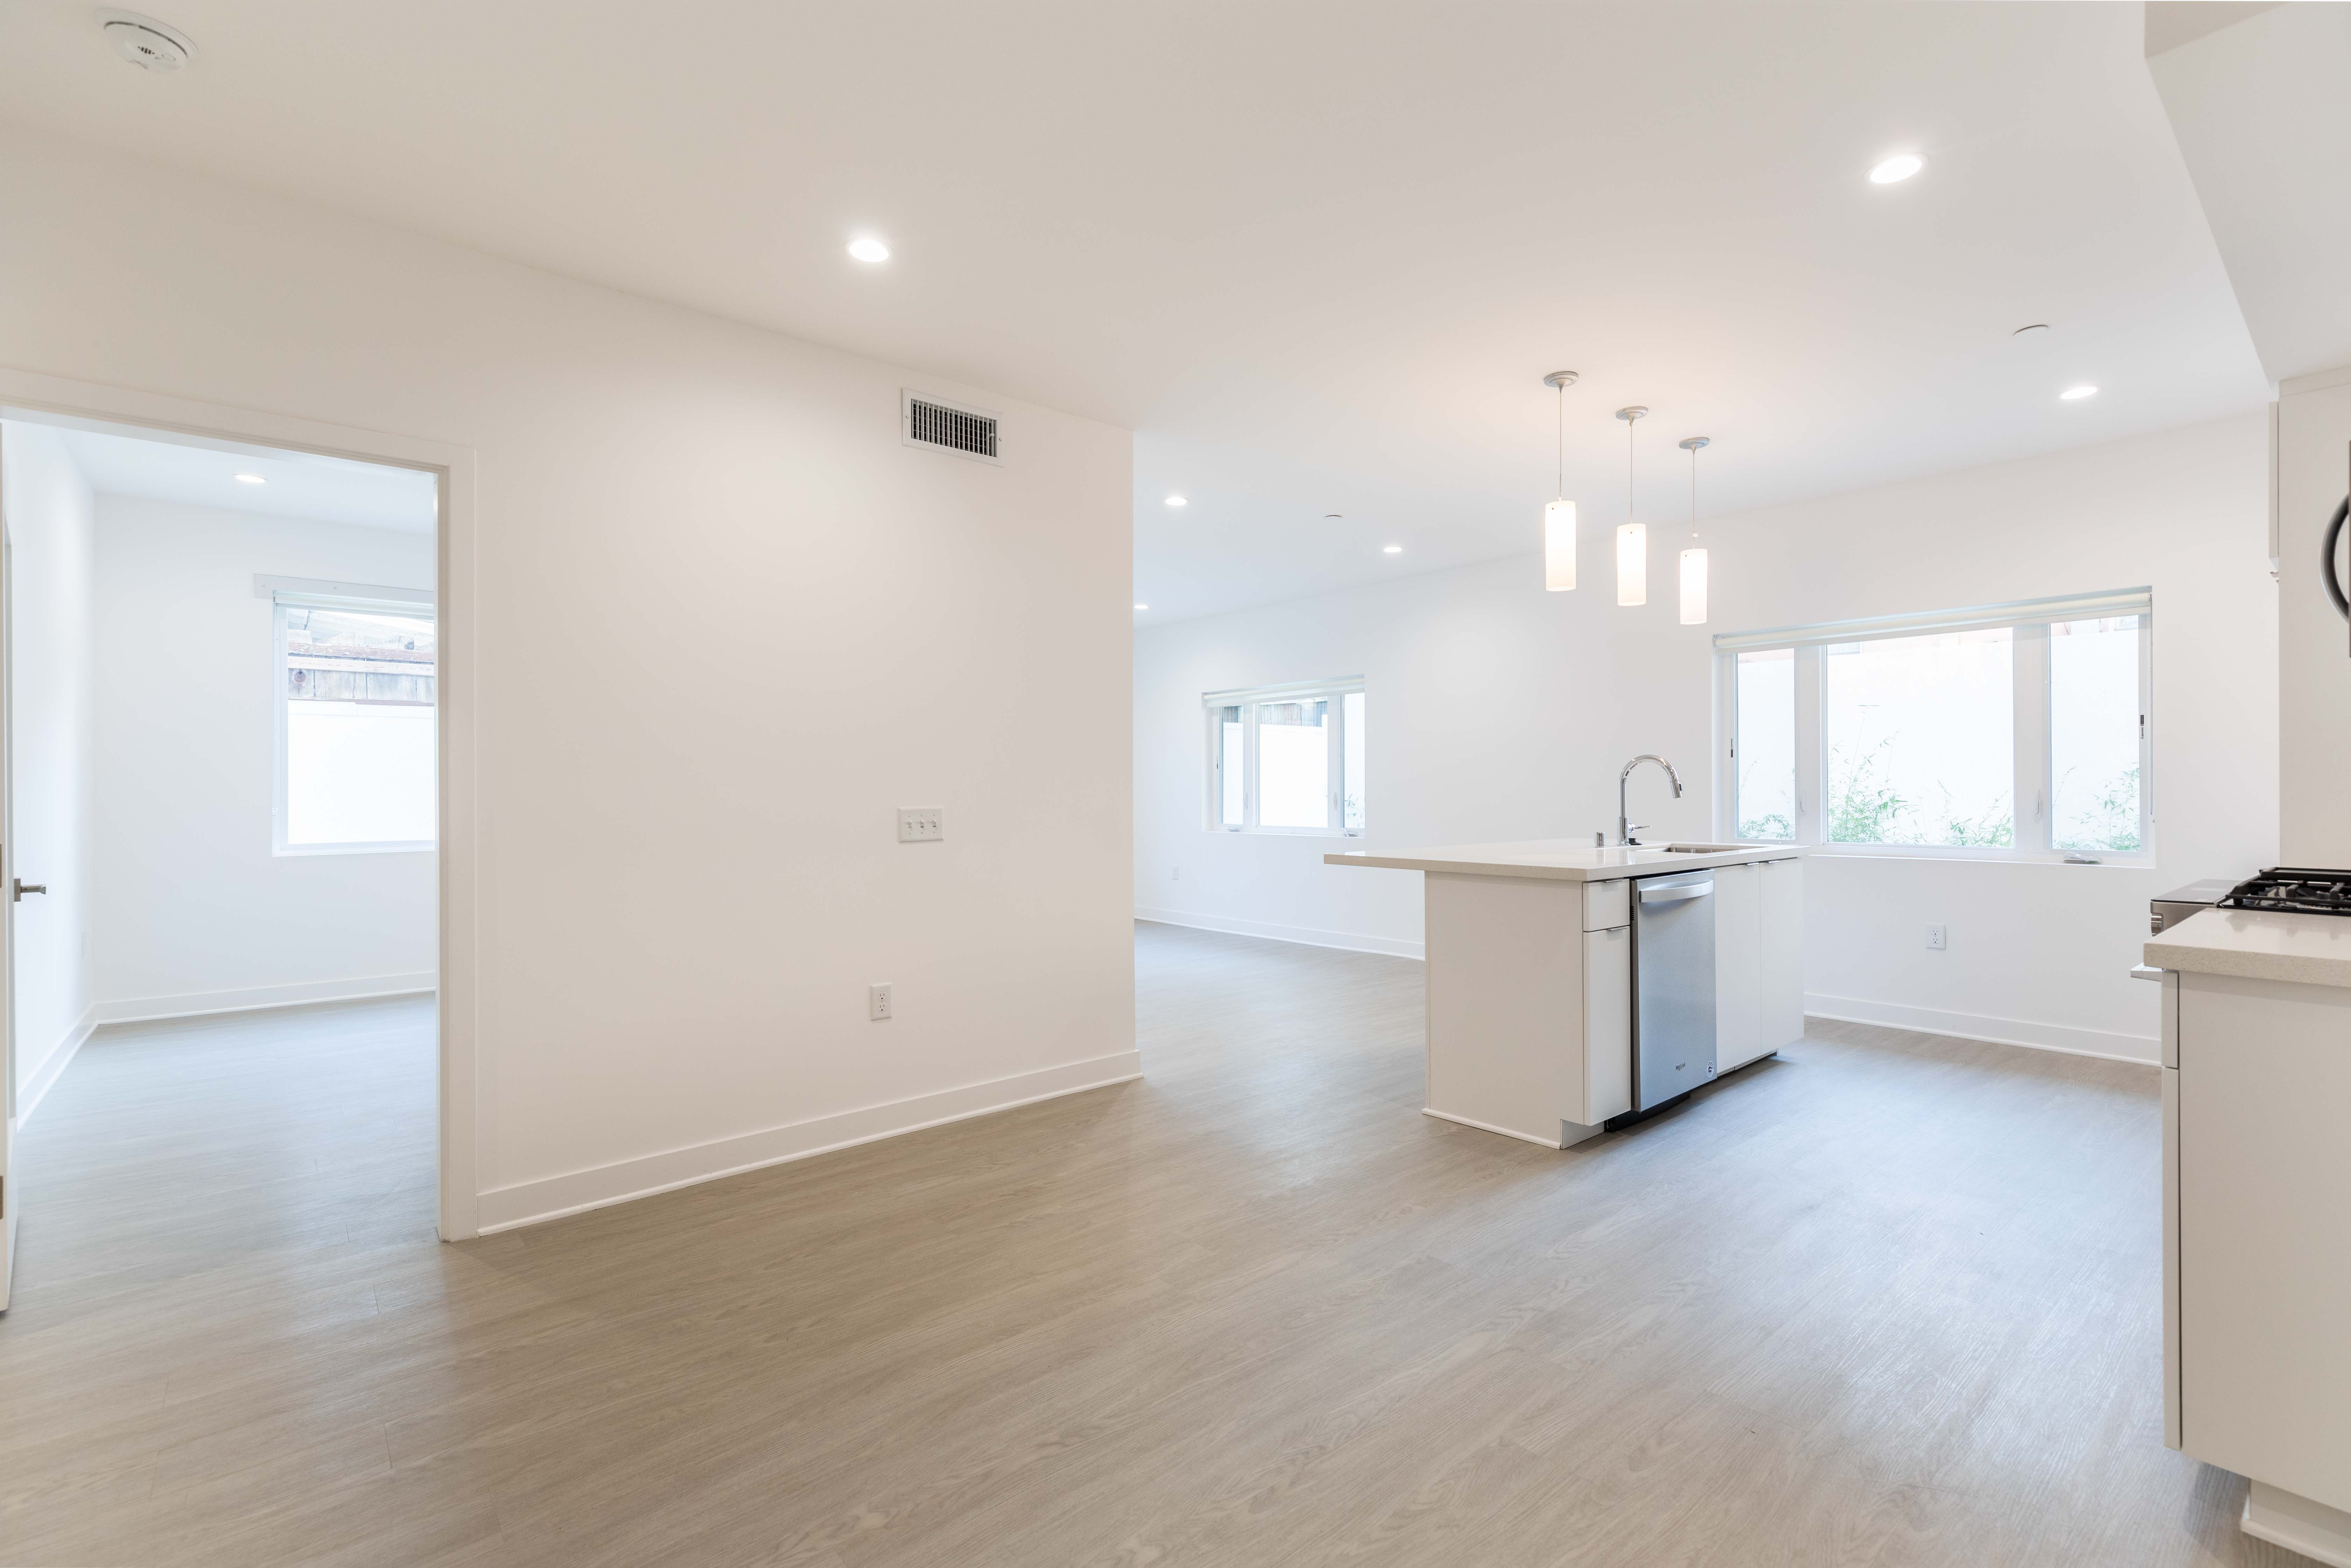 3BR/ 3BA Brand-New Hollywood Beauty w/ Stainless Steel Appliances & Tandem Parking